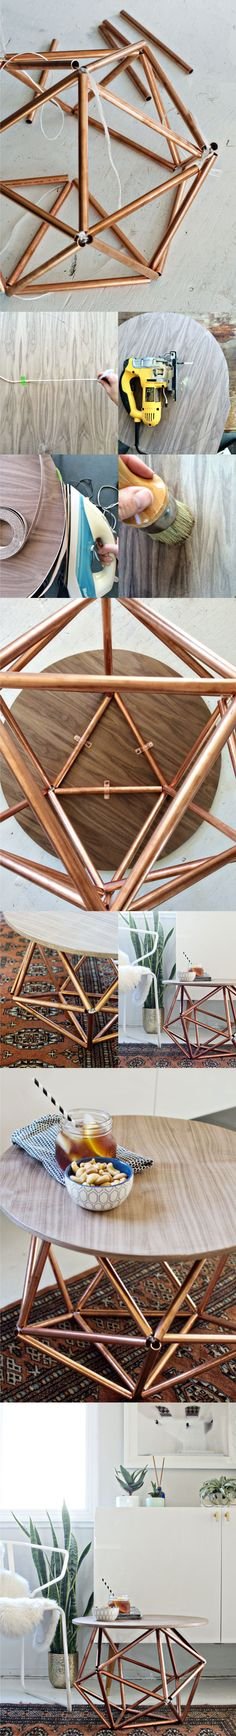 Diy Copper Pipe DIY Side Table Tutorial Money is another sign that you may want or need to remodel y Diy Luminaire, Diy Lampe, Diy Interior, Diy Projects To Try, Clever Diy, Diy Furniture, Diy Home Decor, Diy And Crafts, Design